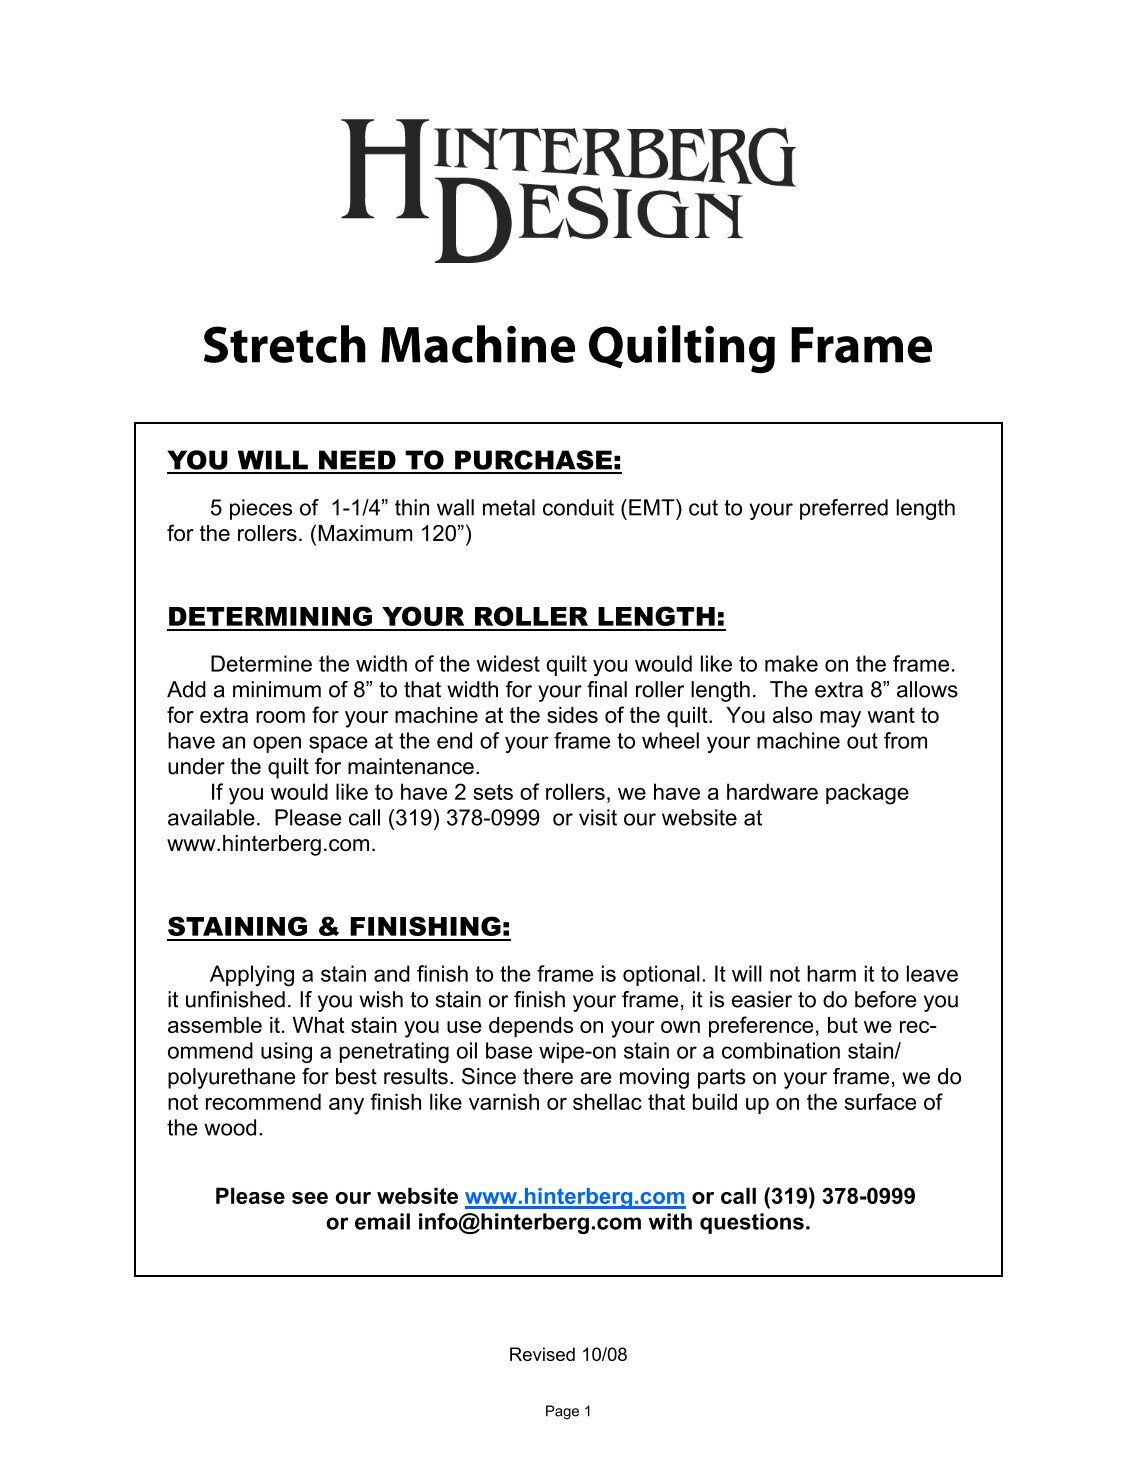 Hinterberg Design Quilting Hoops And Frames ✓ Quilting